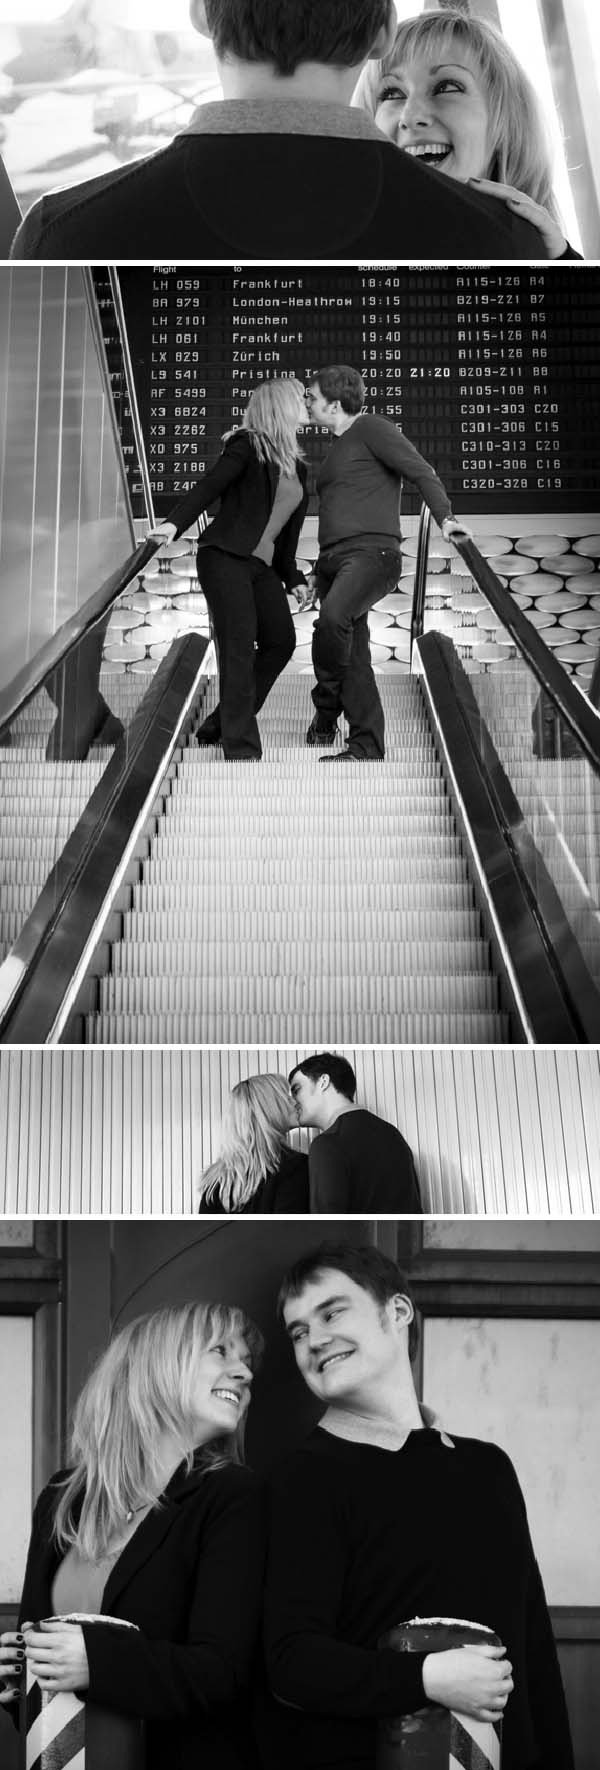 engagement-flughafen_laura-david4